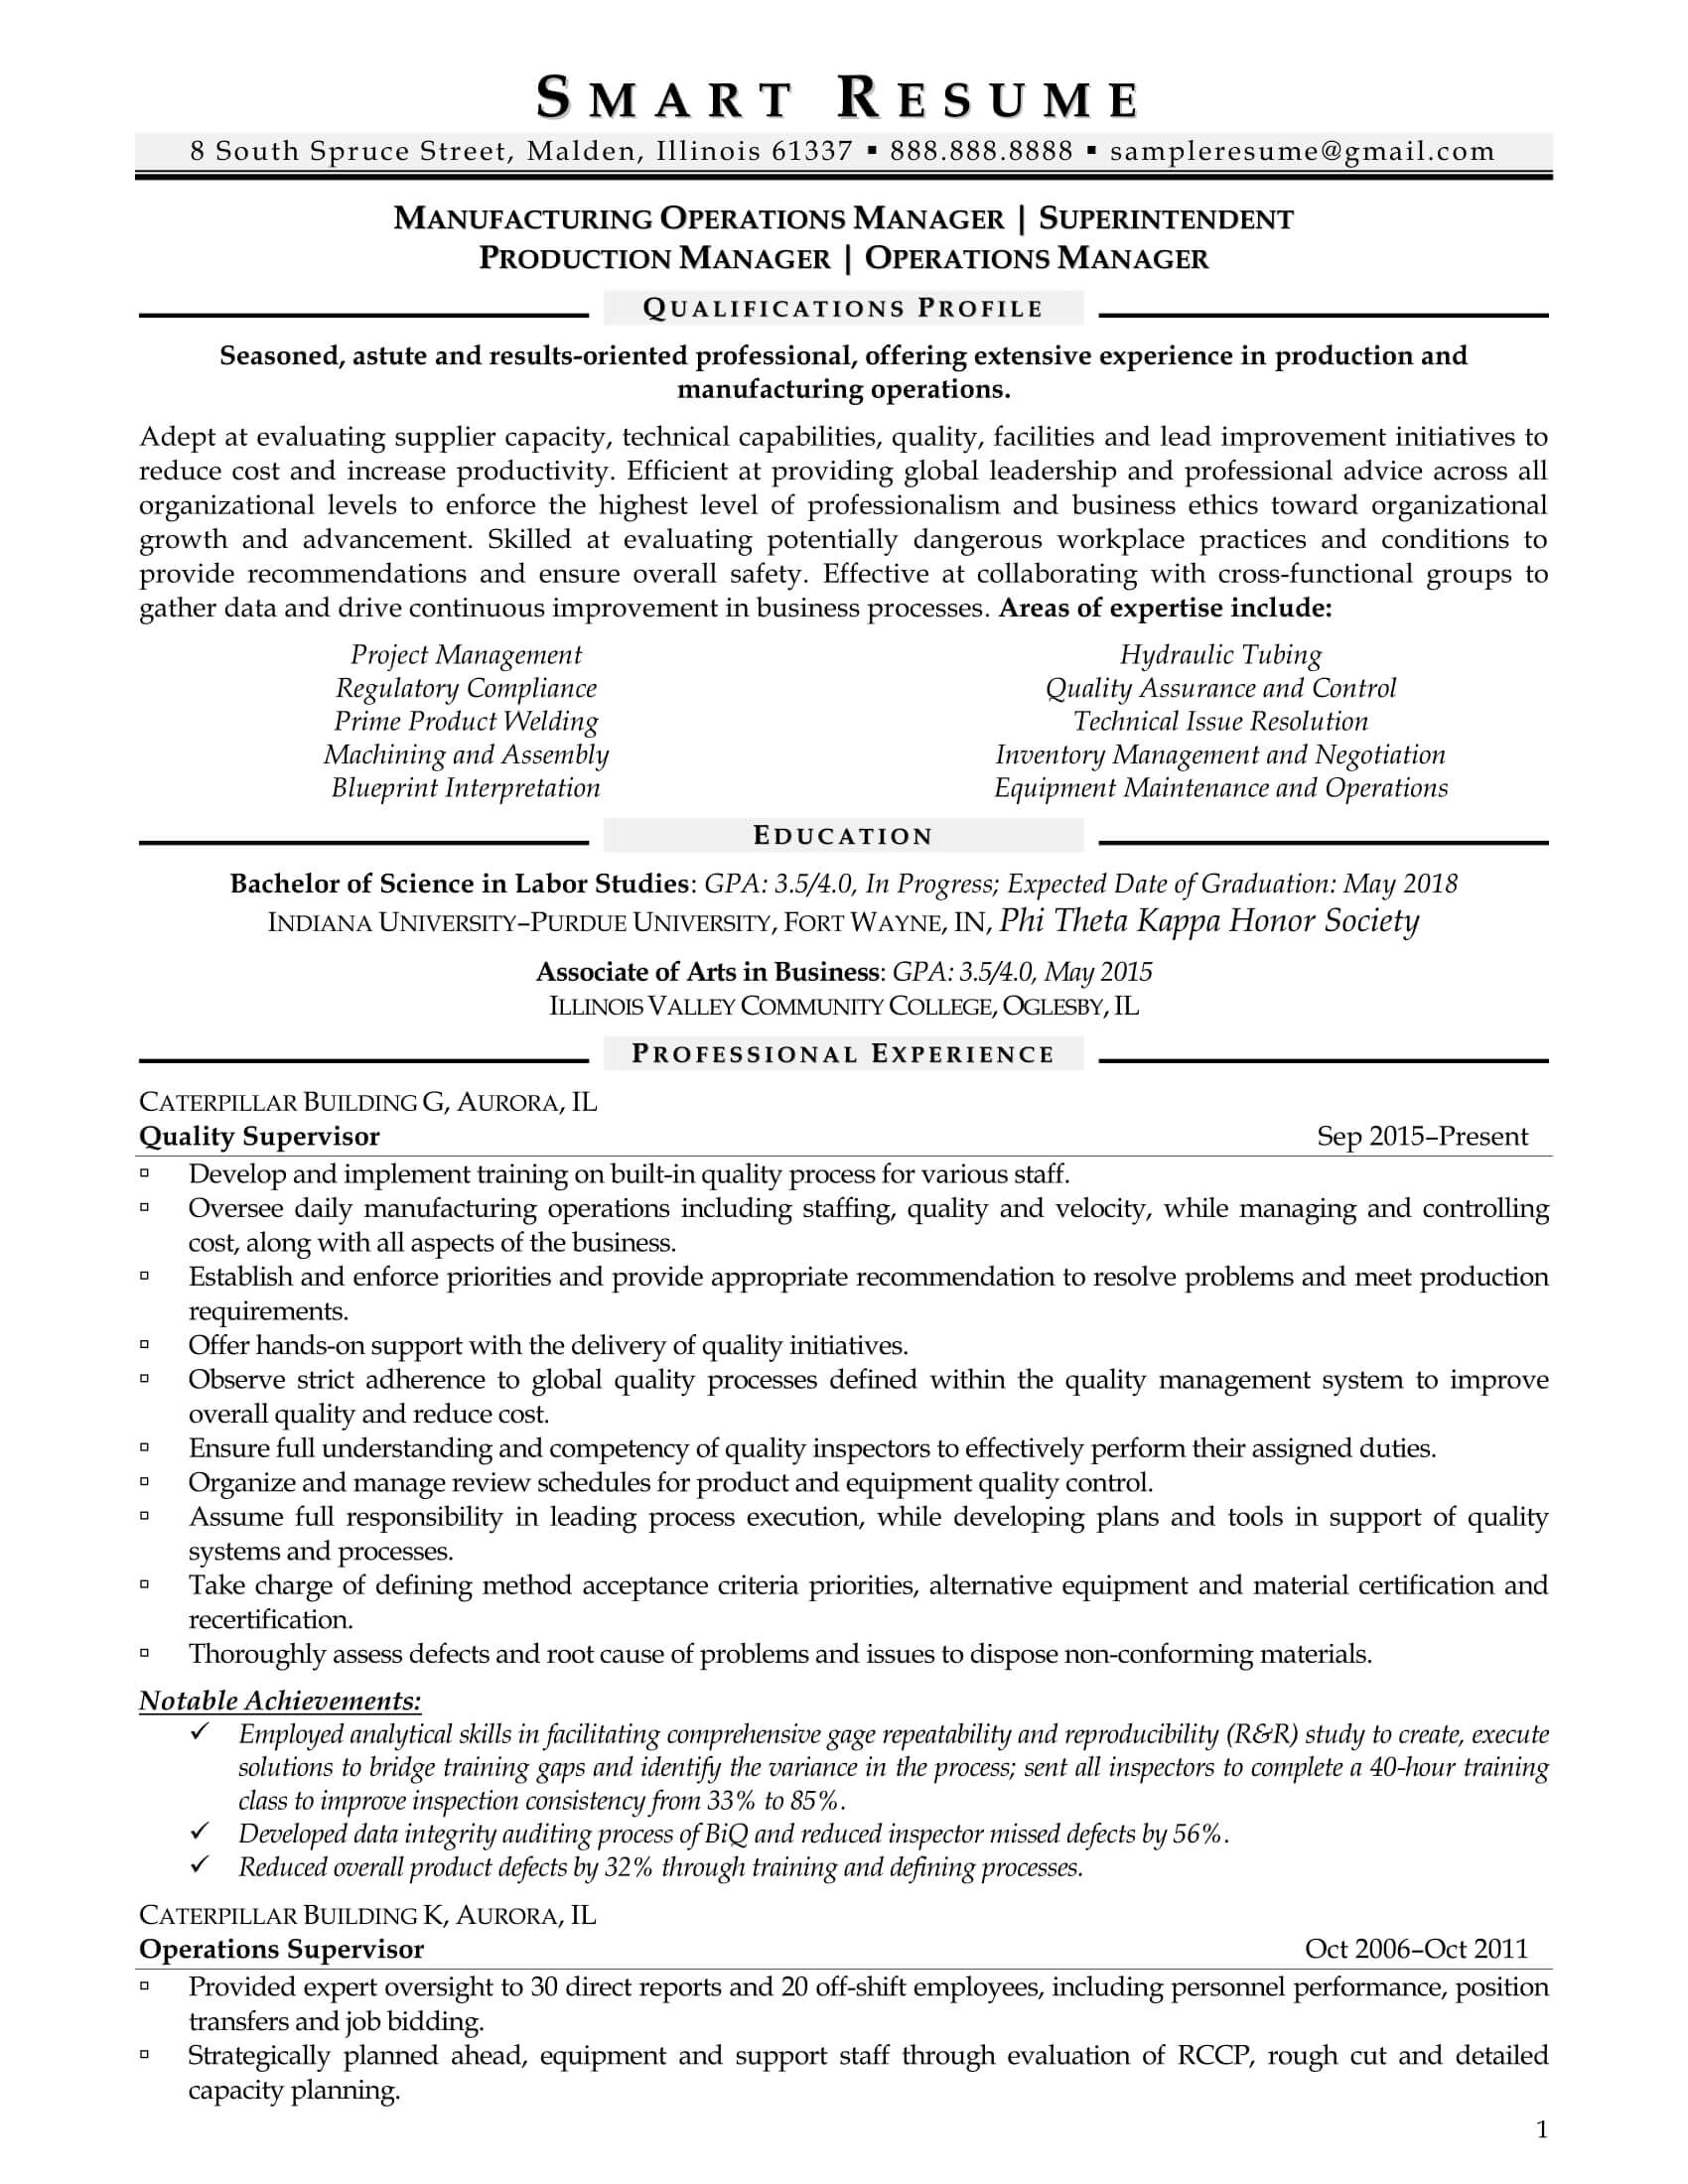 Manufacturing Operations Manager Resume Sample